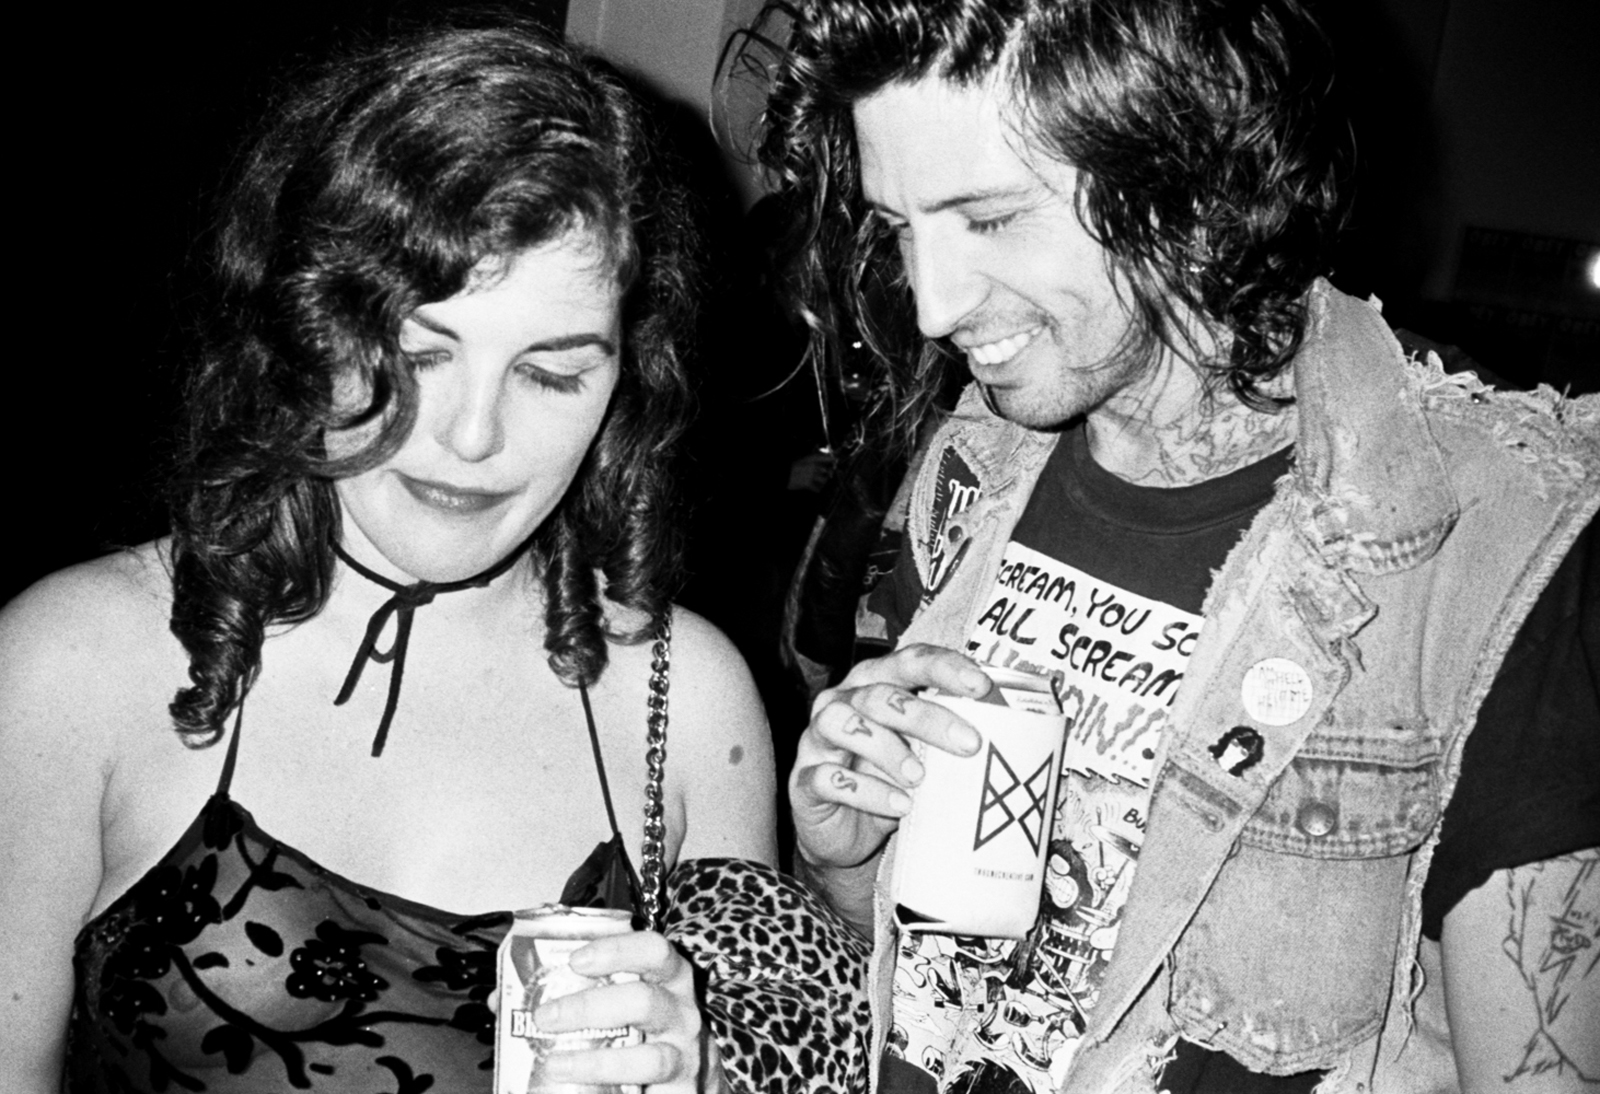 Animals_Mag_Issue2_LaunchParty_10_8_16_KealanShilling_015.jpg